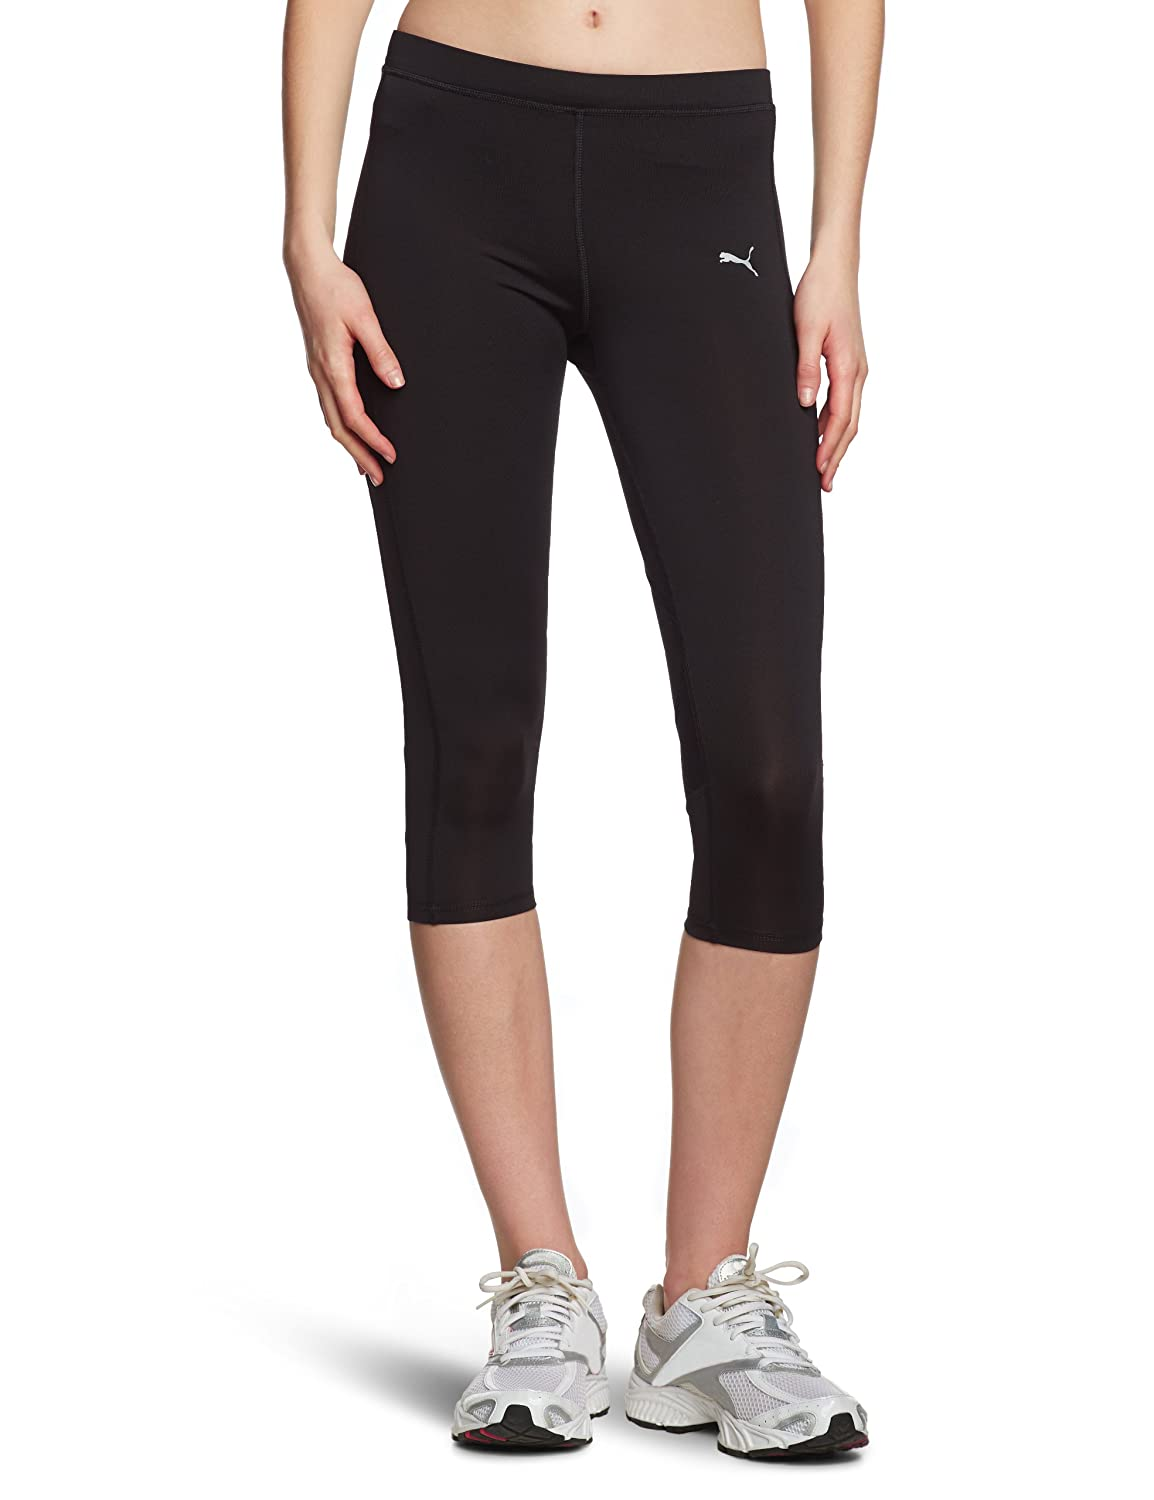 95a48ff28702c9 Puma Women's 3/4-Length Running Leggings Tights black-black Size:L:  Amazon.co.uk: Sports & Outdoors